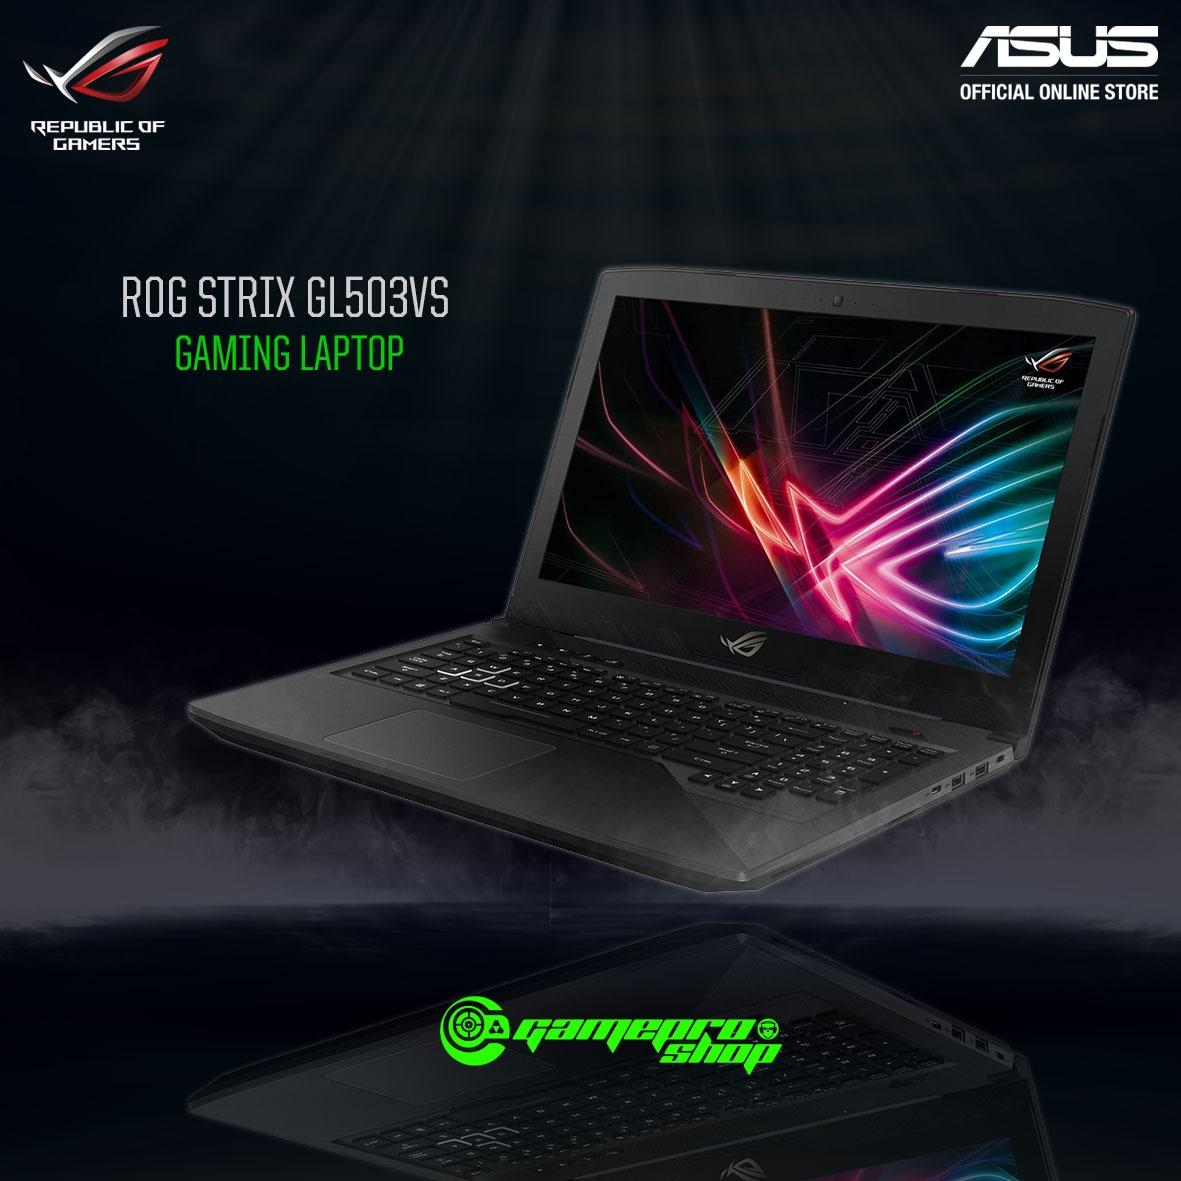 Asus ROG Strix GL503VS – EI032T (I7-7700HQ/GTX1070 8GB/256GB SSD) 15.6″ With 144Hz *NDP PROMO*